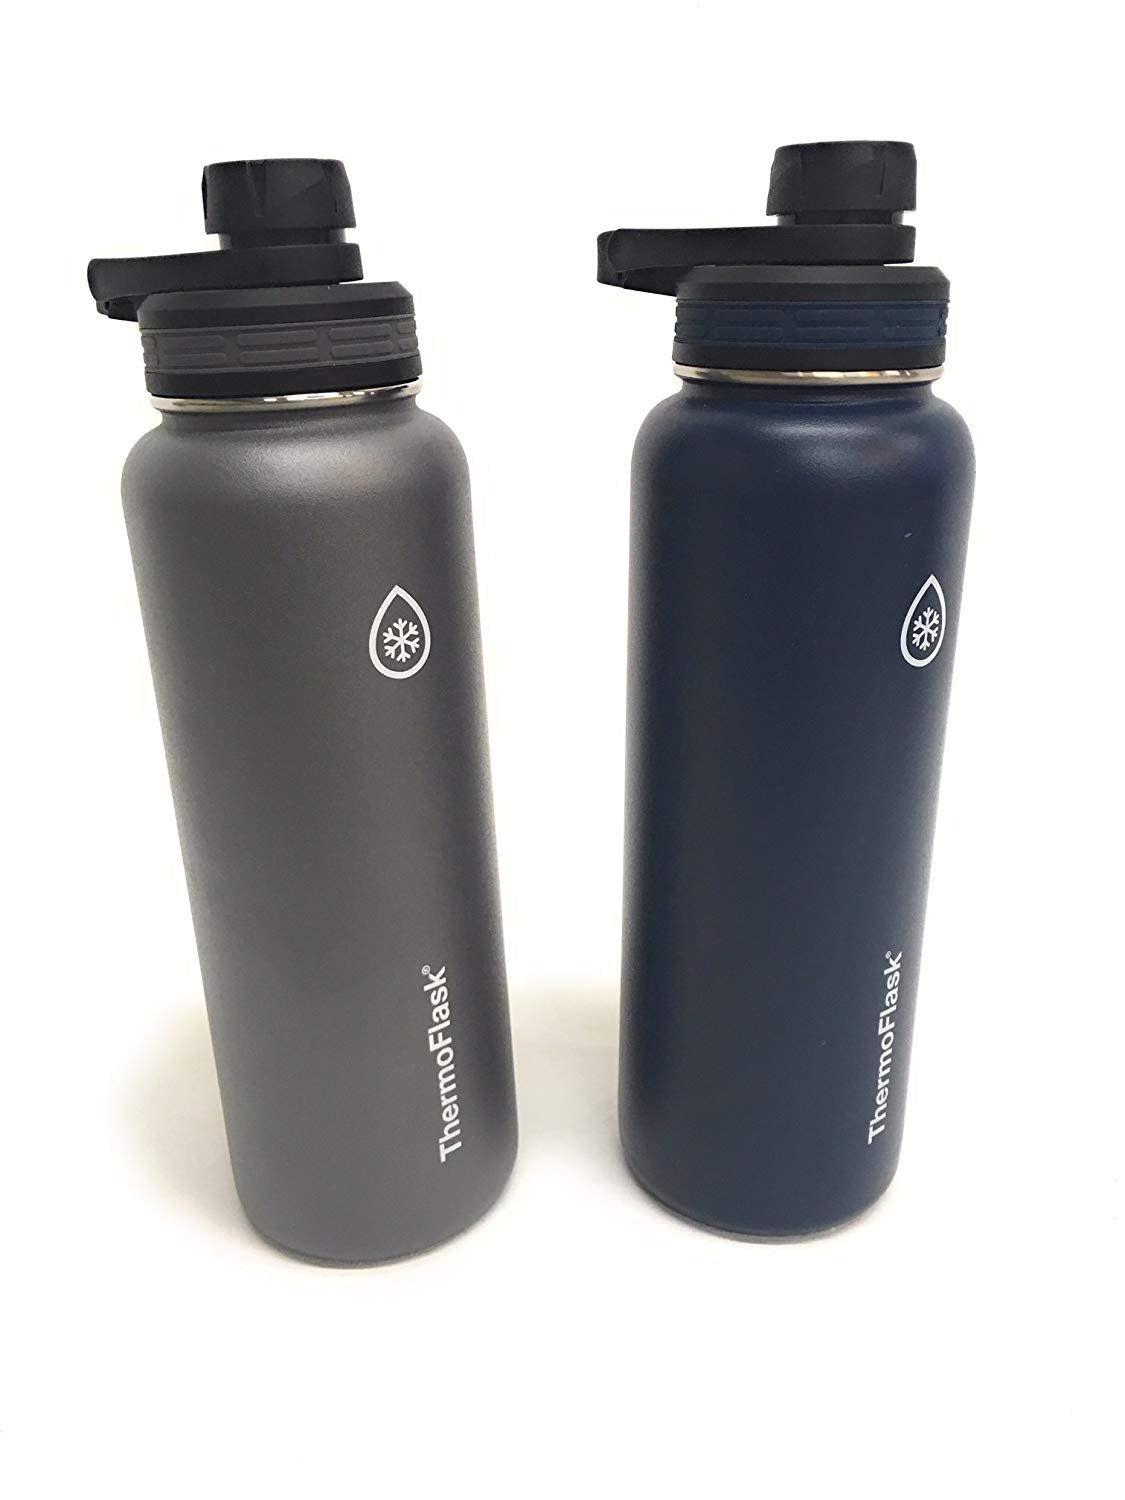 ThermoFlask 24-Ounce Double Wall Vacuum Insulated Stainless Steel Water Bottles 2-Piece (Grey/Dark Blue)